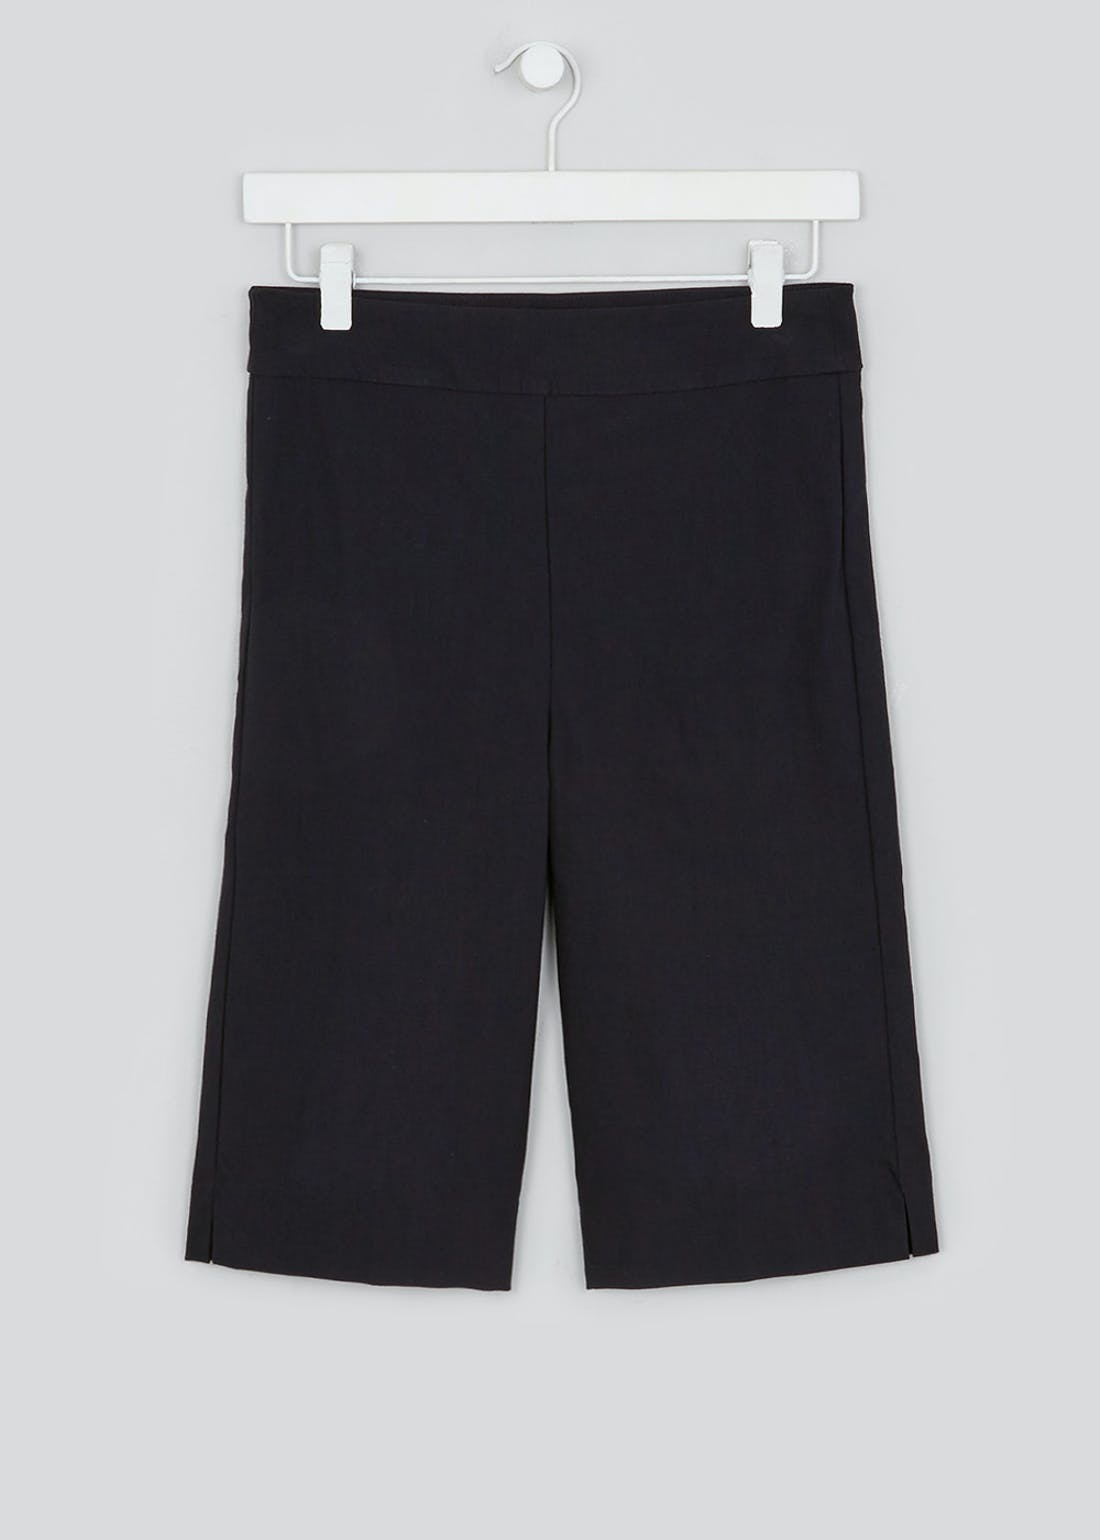 Ultra Support Knee Length Bermuda Shorts